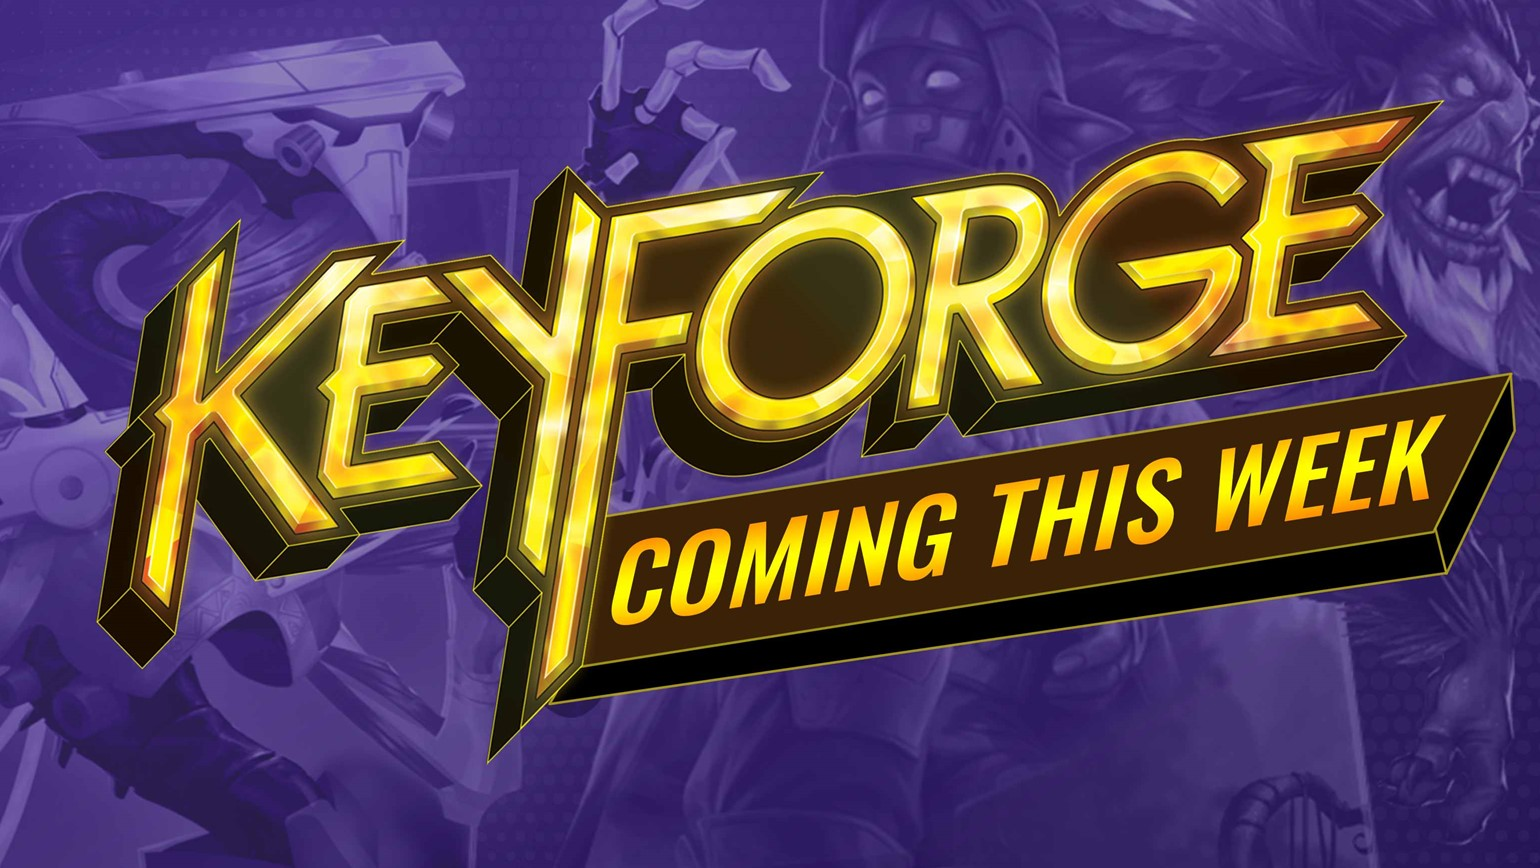 KeyForge Coming to TCGplayer This Week